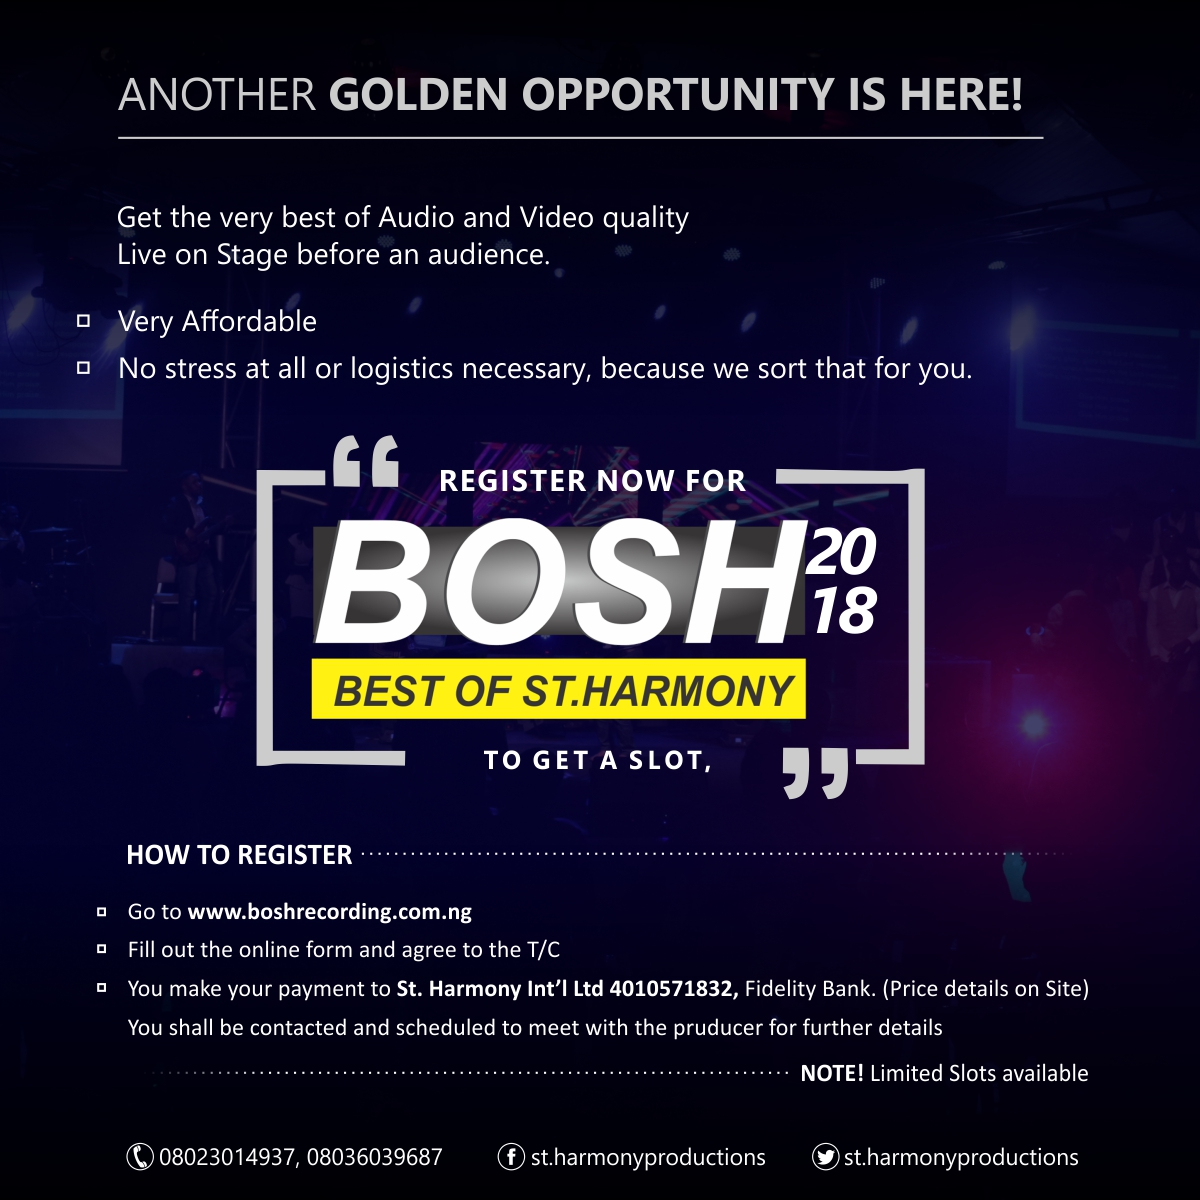 Registration For Best Of St. Harmony Live Recording [BOSH 2018] Is On - Limited Slots Available For Artiste! [@StHarmonyproductions]